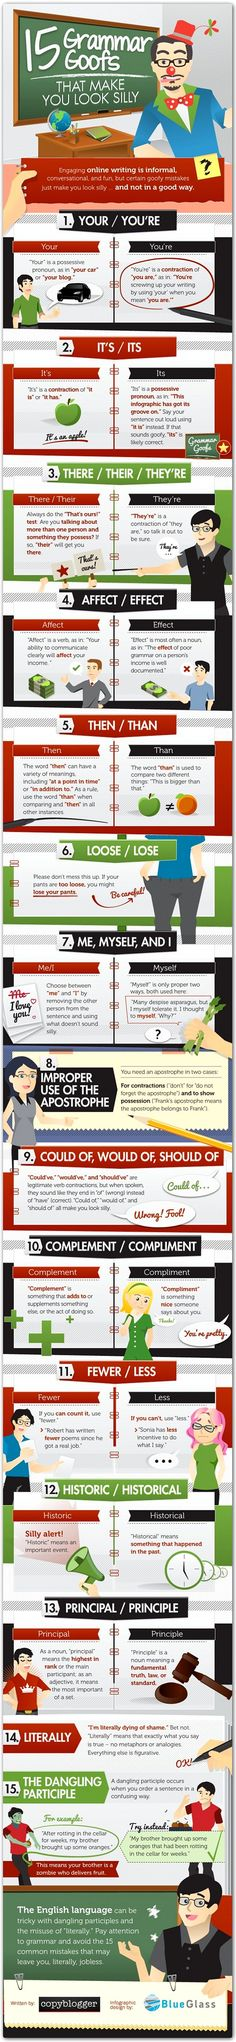 Infographic: 15 grammar errors to avoid - even when you're writing informally for social media.